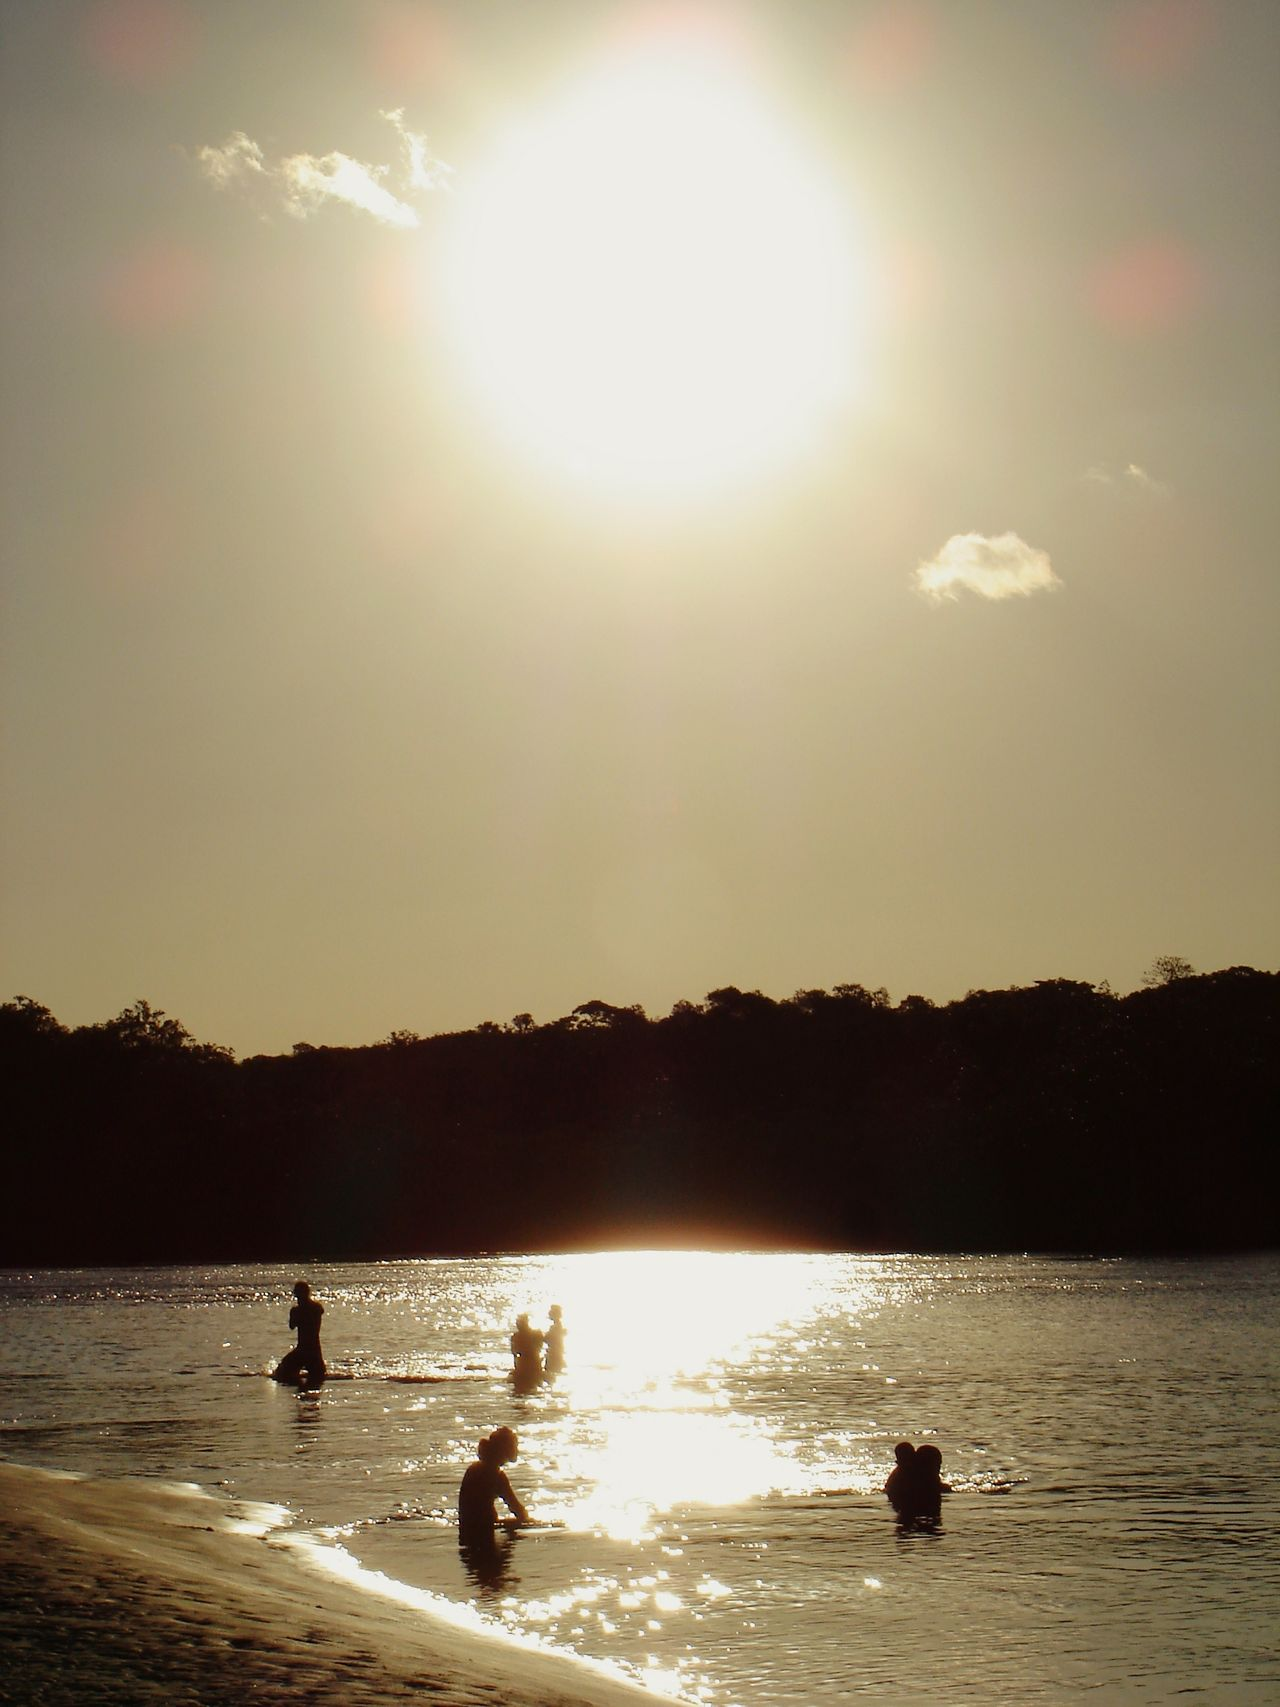 Sunlight Nature Silhouette Sunbeam Sun Beauty In Nature No People Outdoors Sunset River Shadownlight People Together Day Swimming